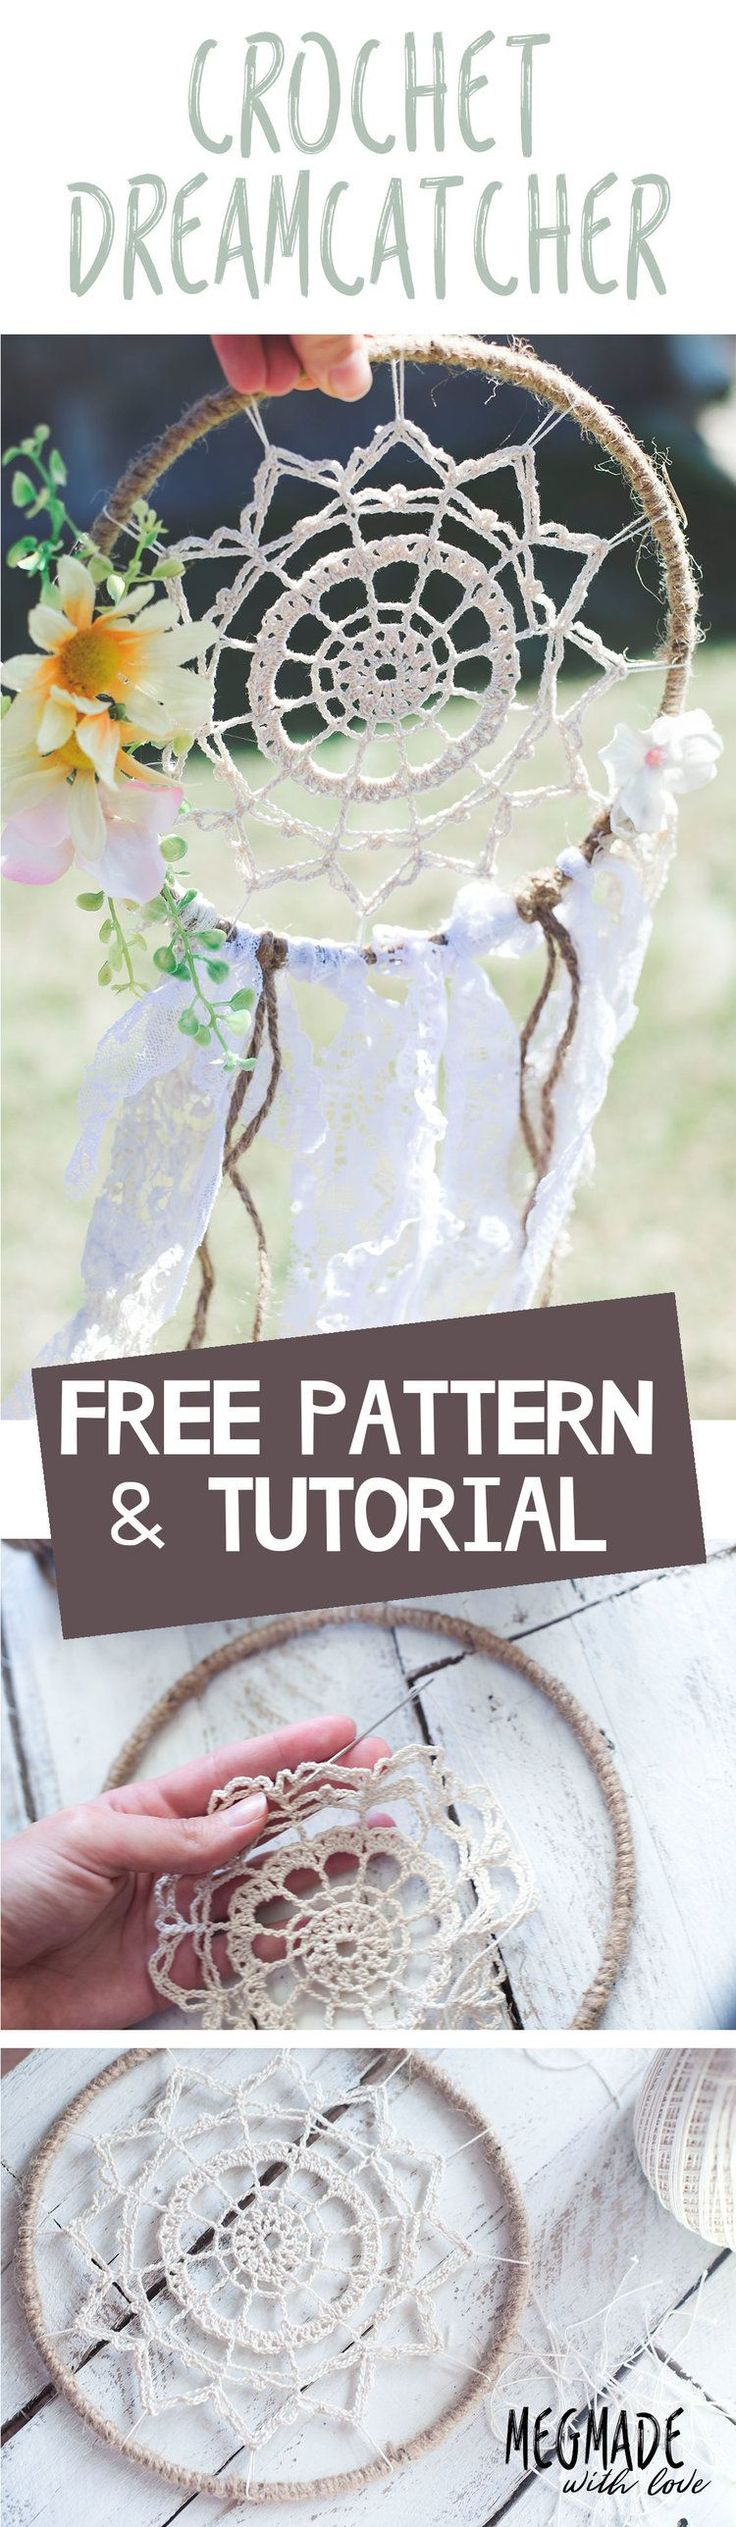 ***You can find the PDF version of this pattern in my shop by clicking here. Great for easy printing!*** I'm oh so pumped to bring you this dreamy dreamcatcher pattern I've whipped up here recently! I've been inspired by the doily dreamcatchers for quite some time, and thought to myself- I should cr